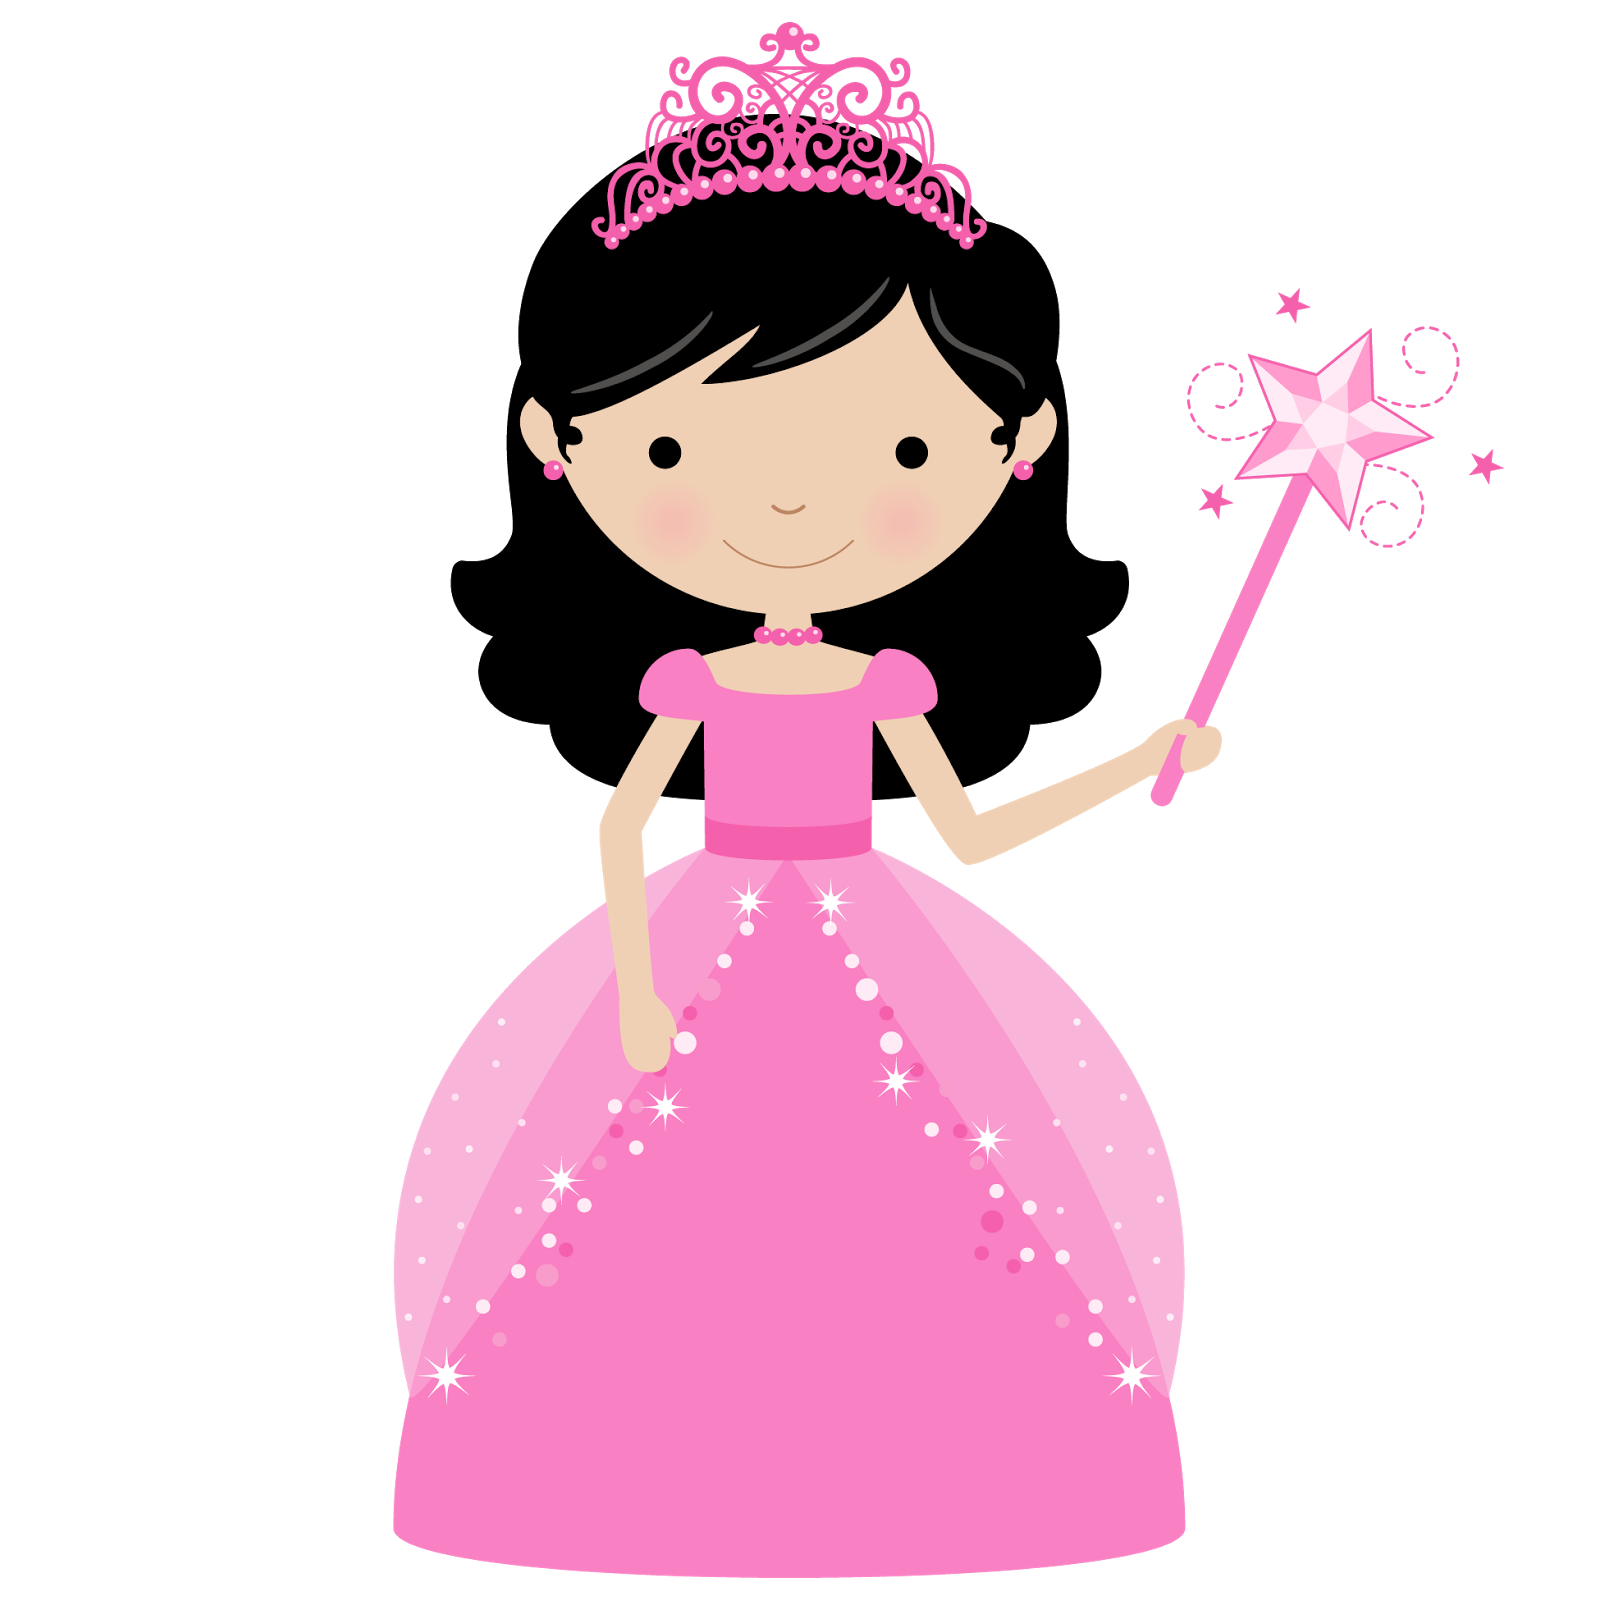 Princess and Cupcake Clipart. | Oh My Fiesta! in english